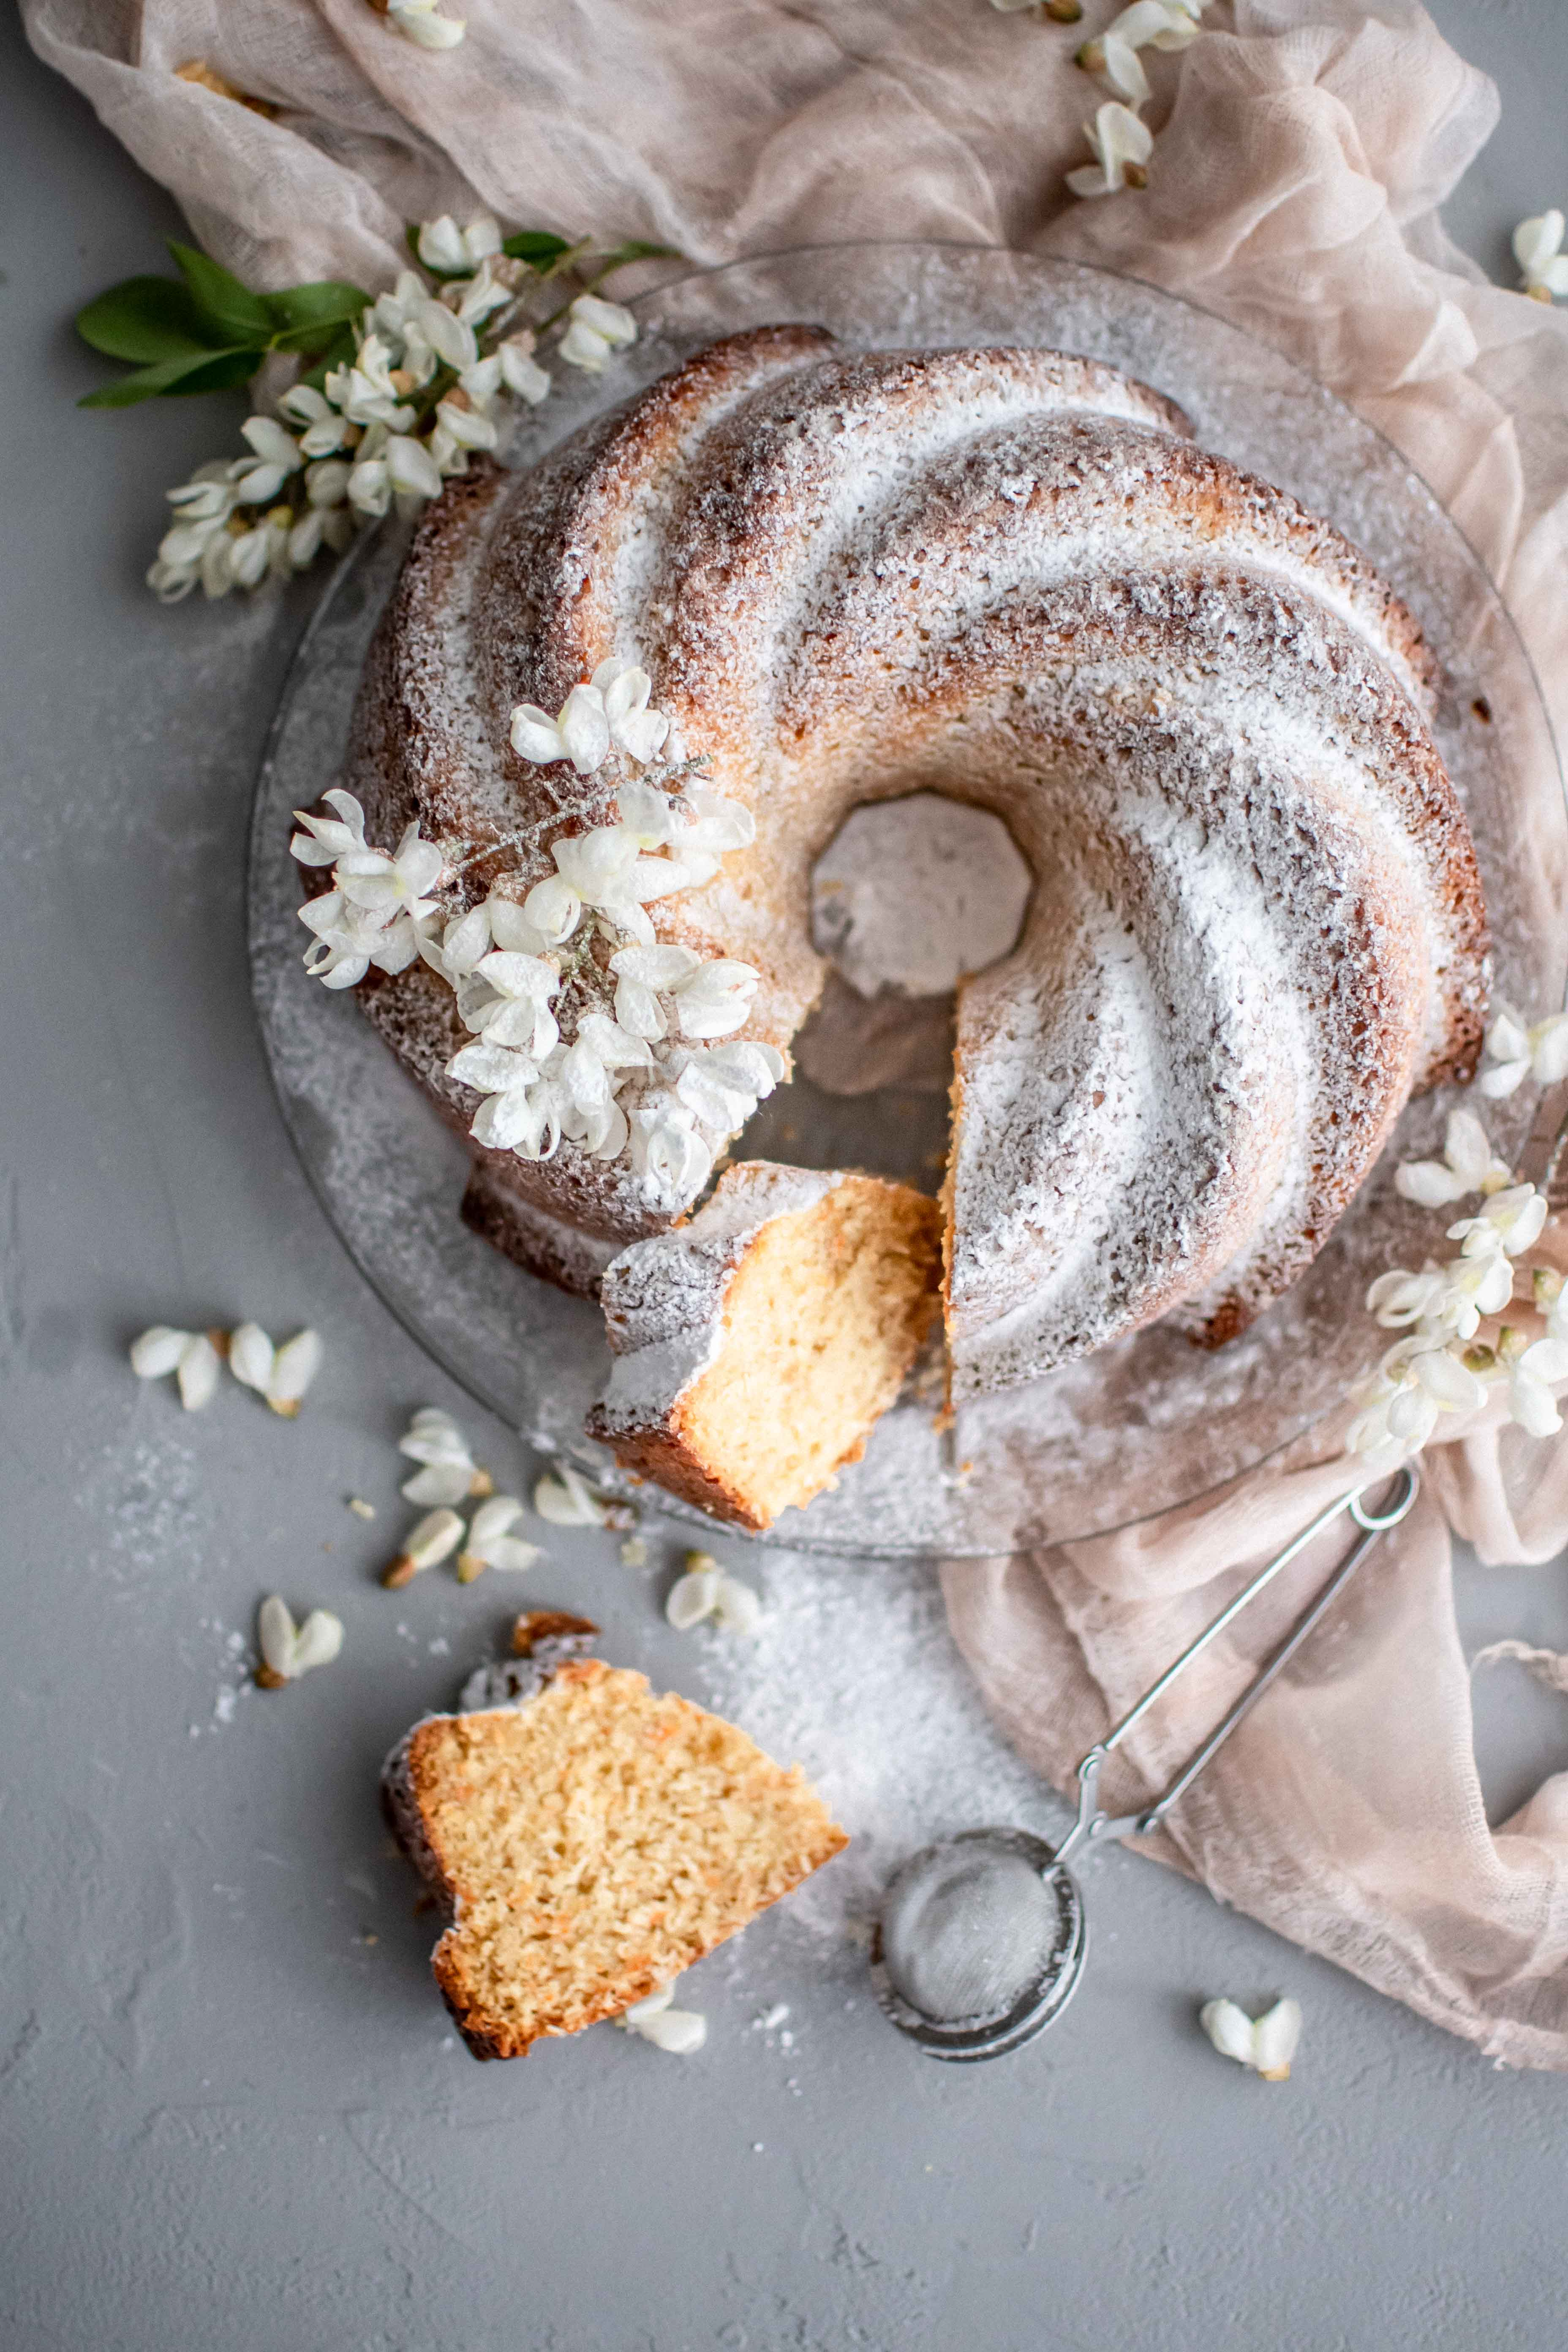 Mrkvova babovka | carrot bundtcake photography